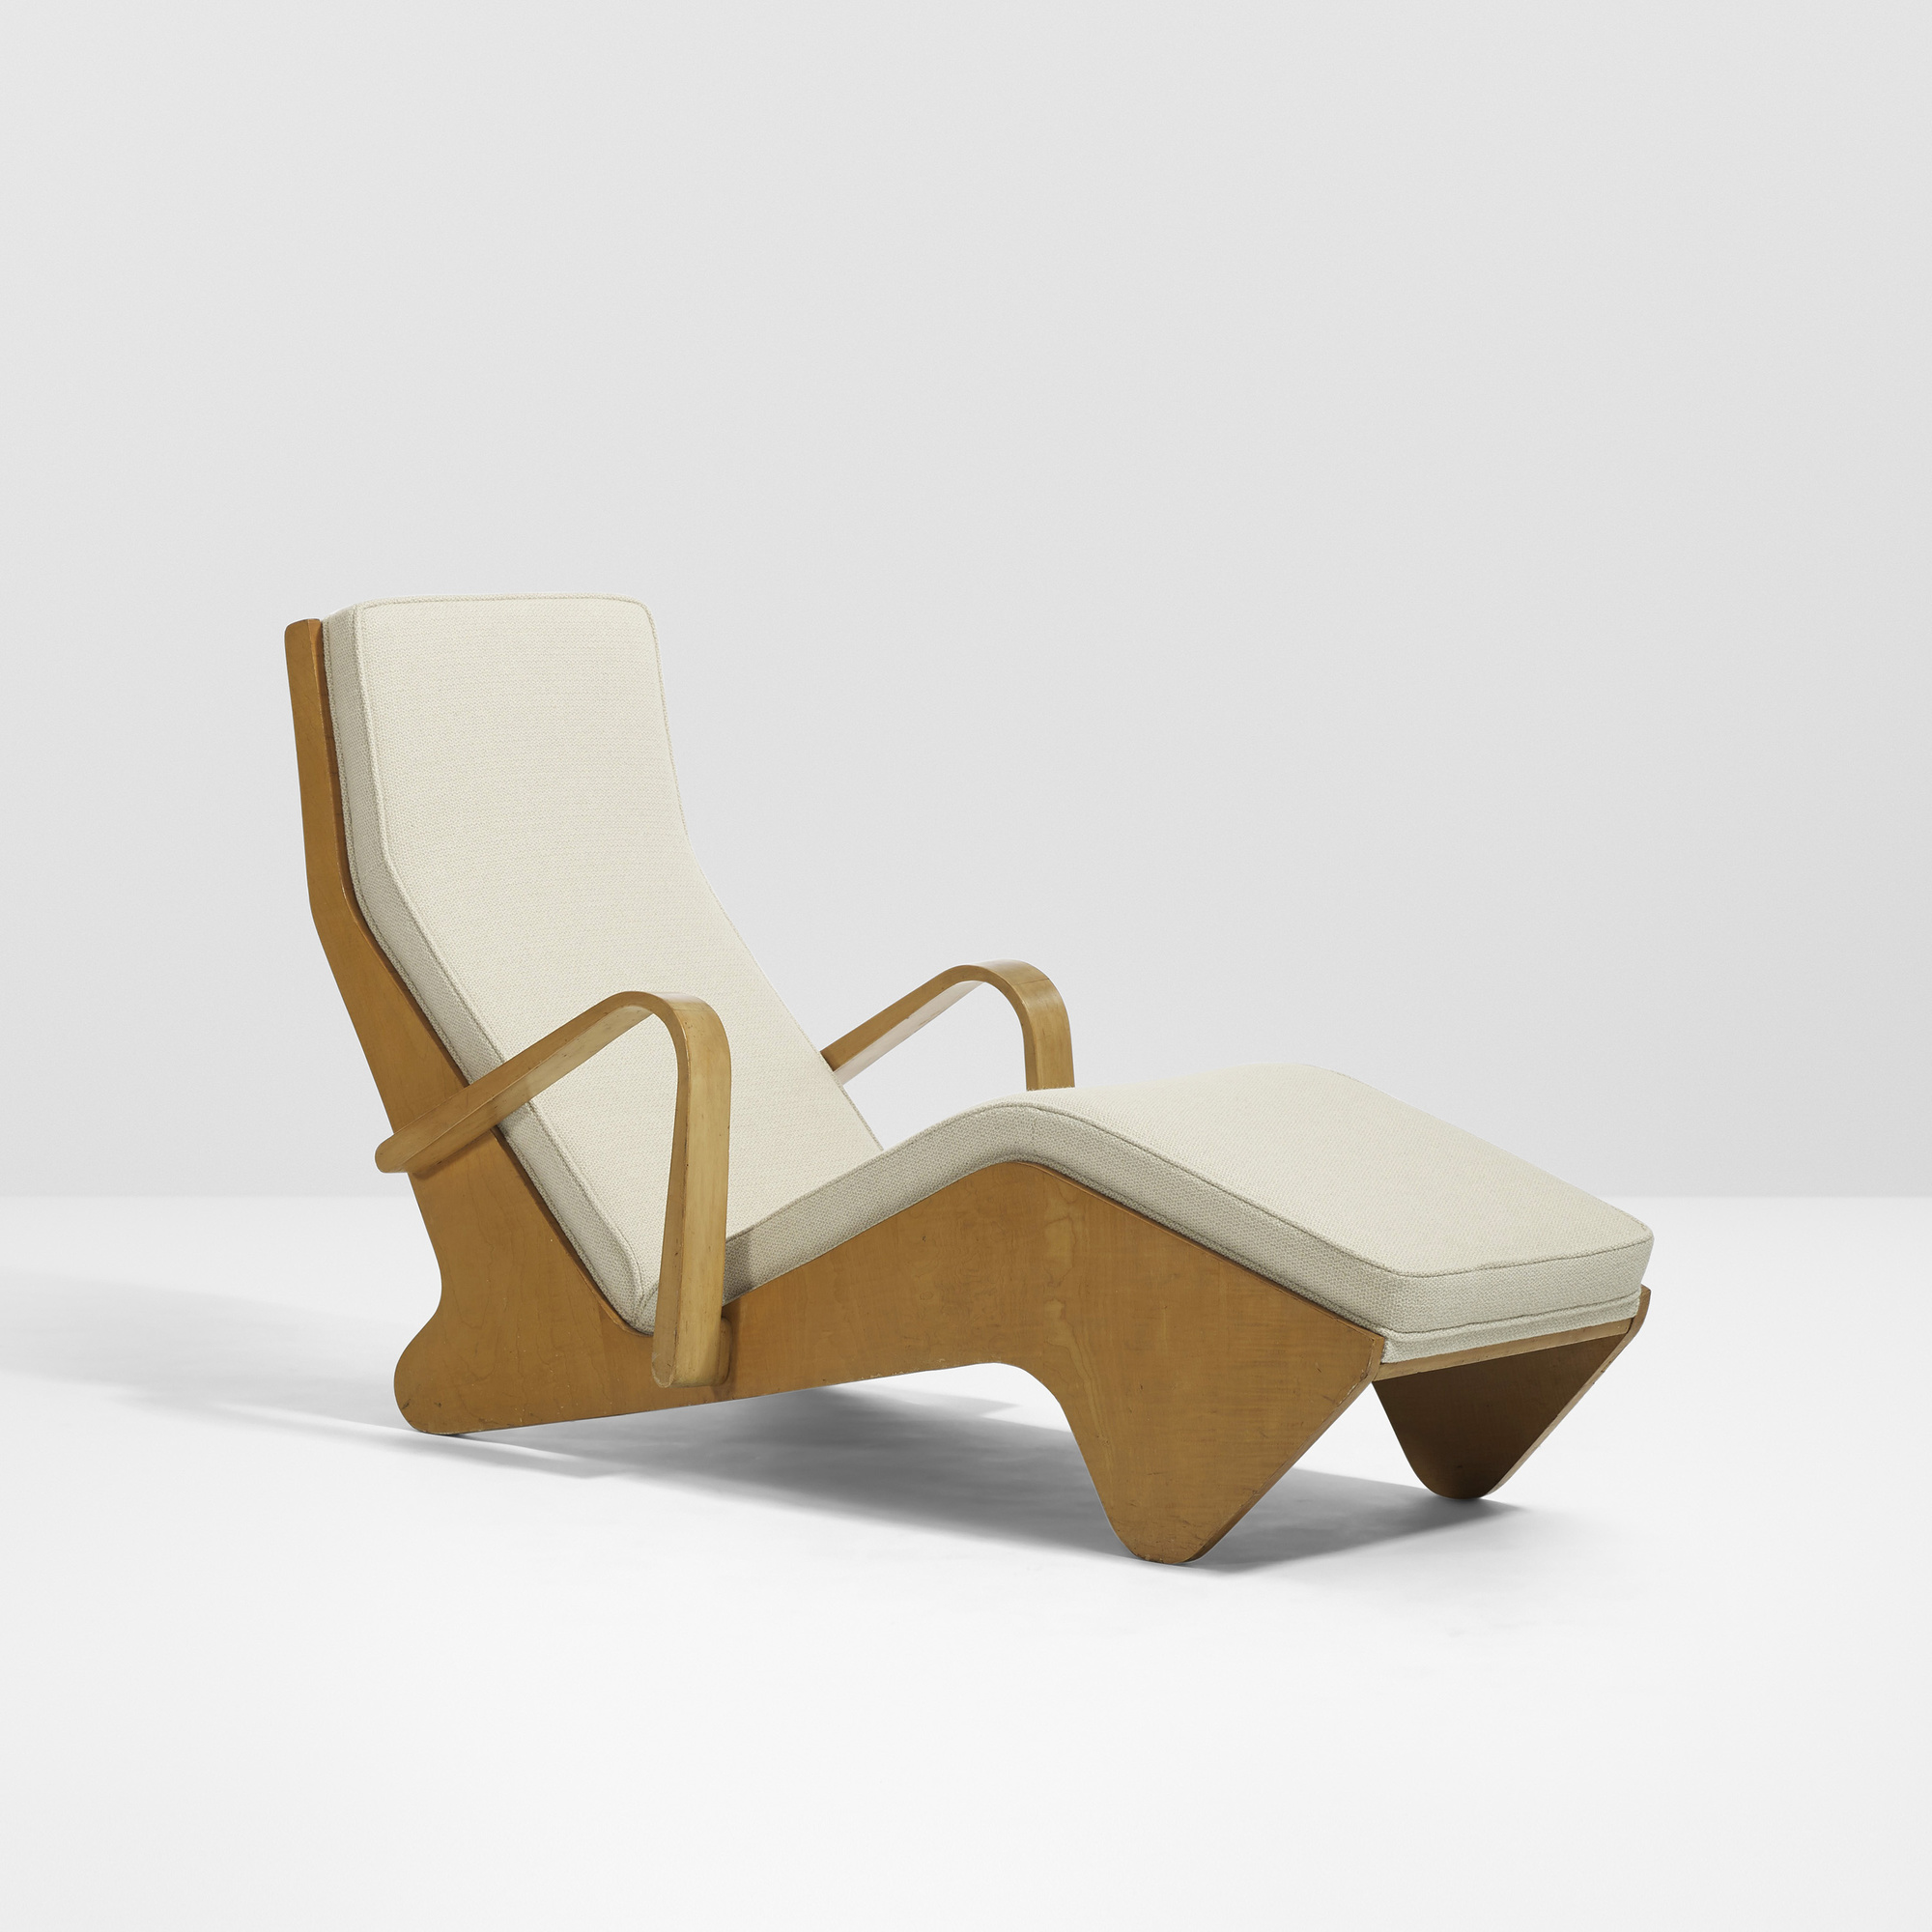 19 marcel breuer rare chaise lounge for 2 chaise lounges